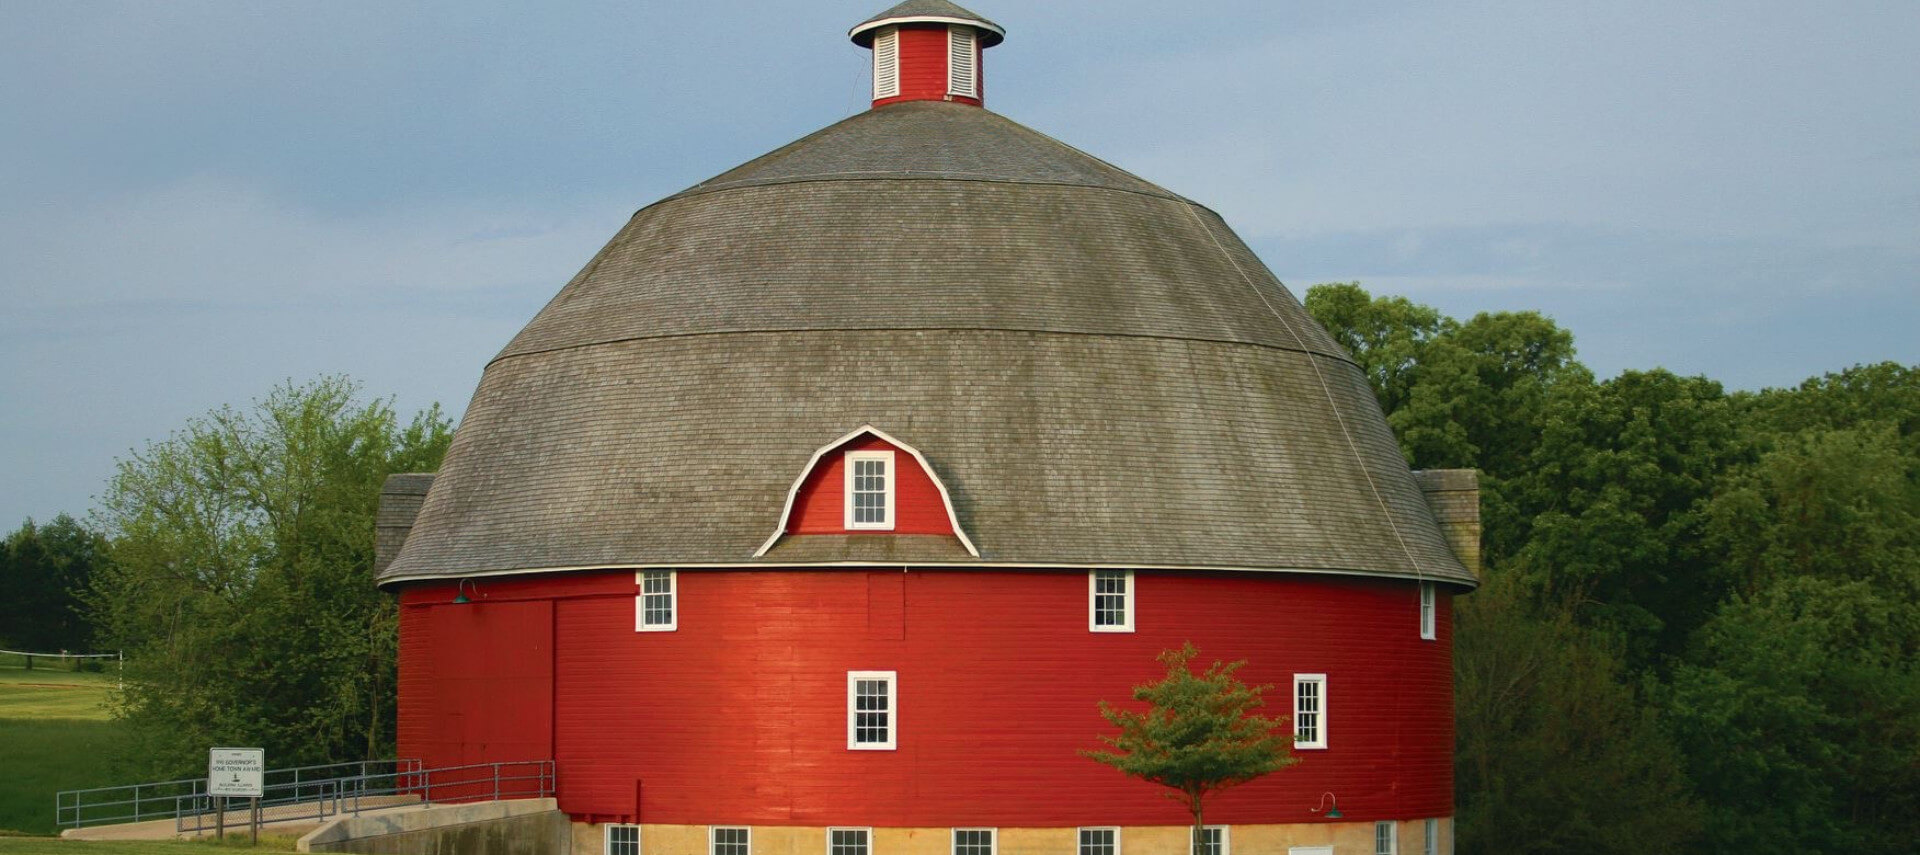 Big round red barn with a grey roof in front of a dirt road